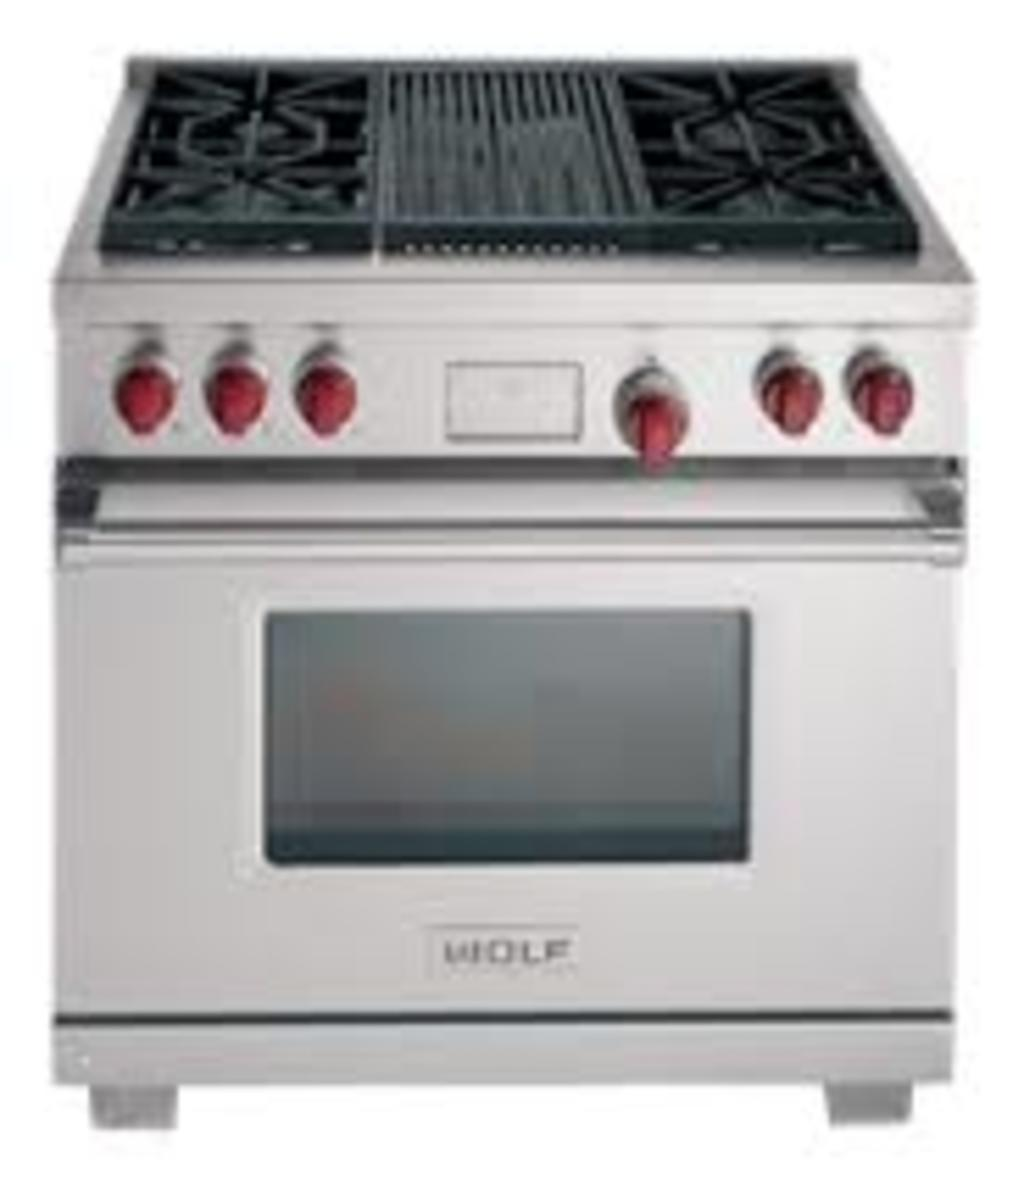 Marvel Apliances Service - Restaurant Stove